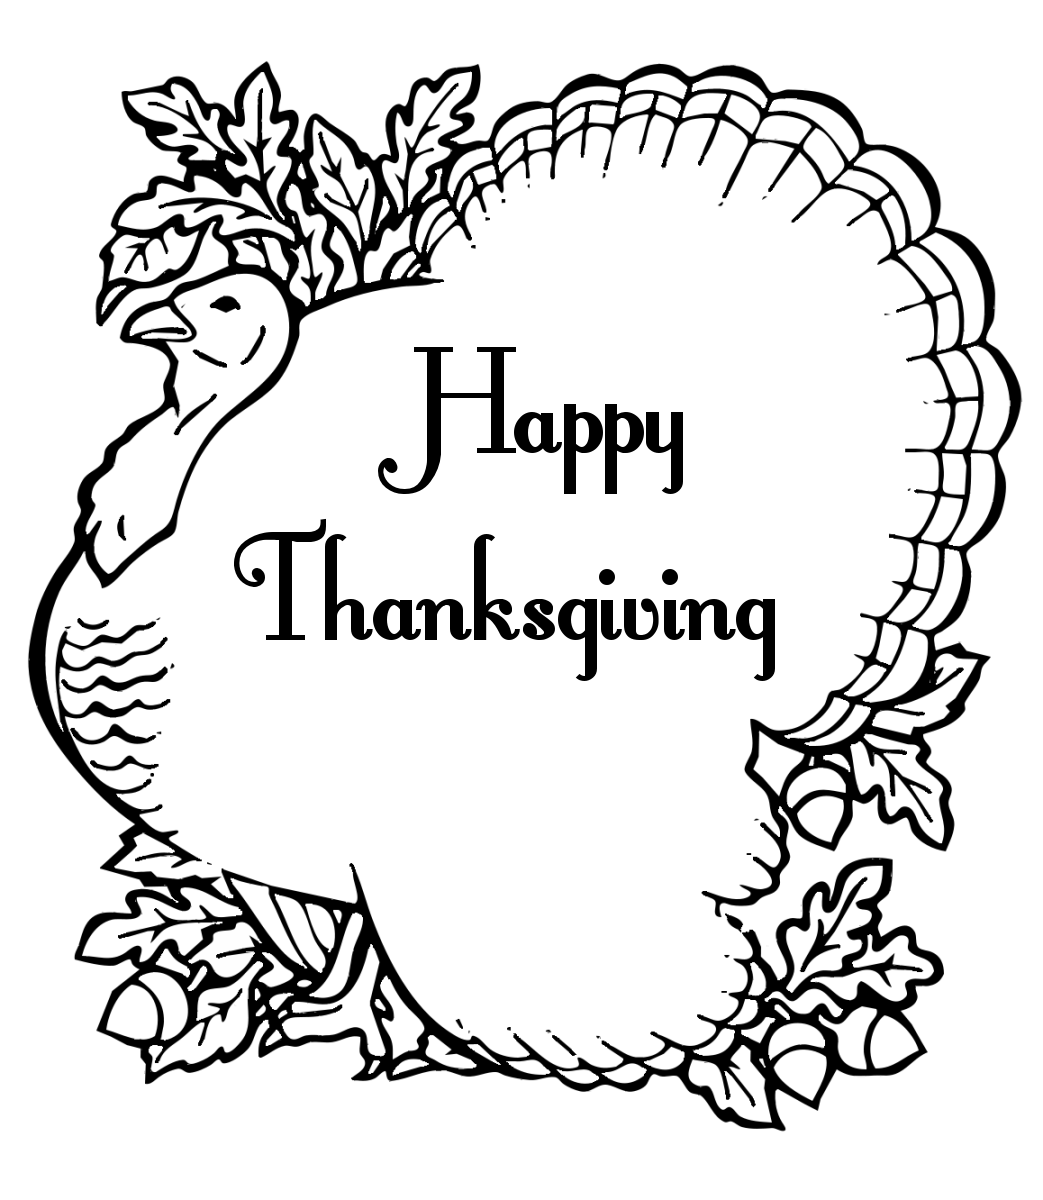 Thanksgiving Coloring Pages 2 Coloring Pages To Print Free Printable Thanksgiving Coloring Pages